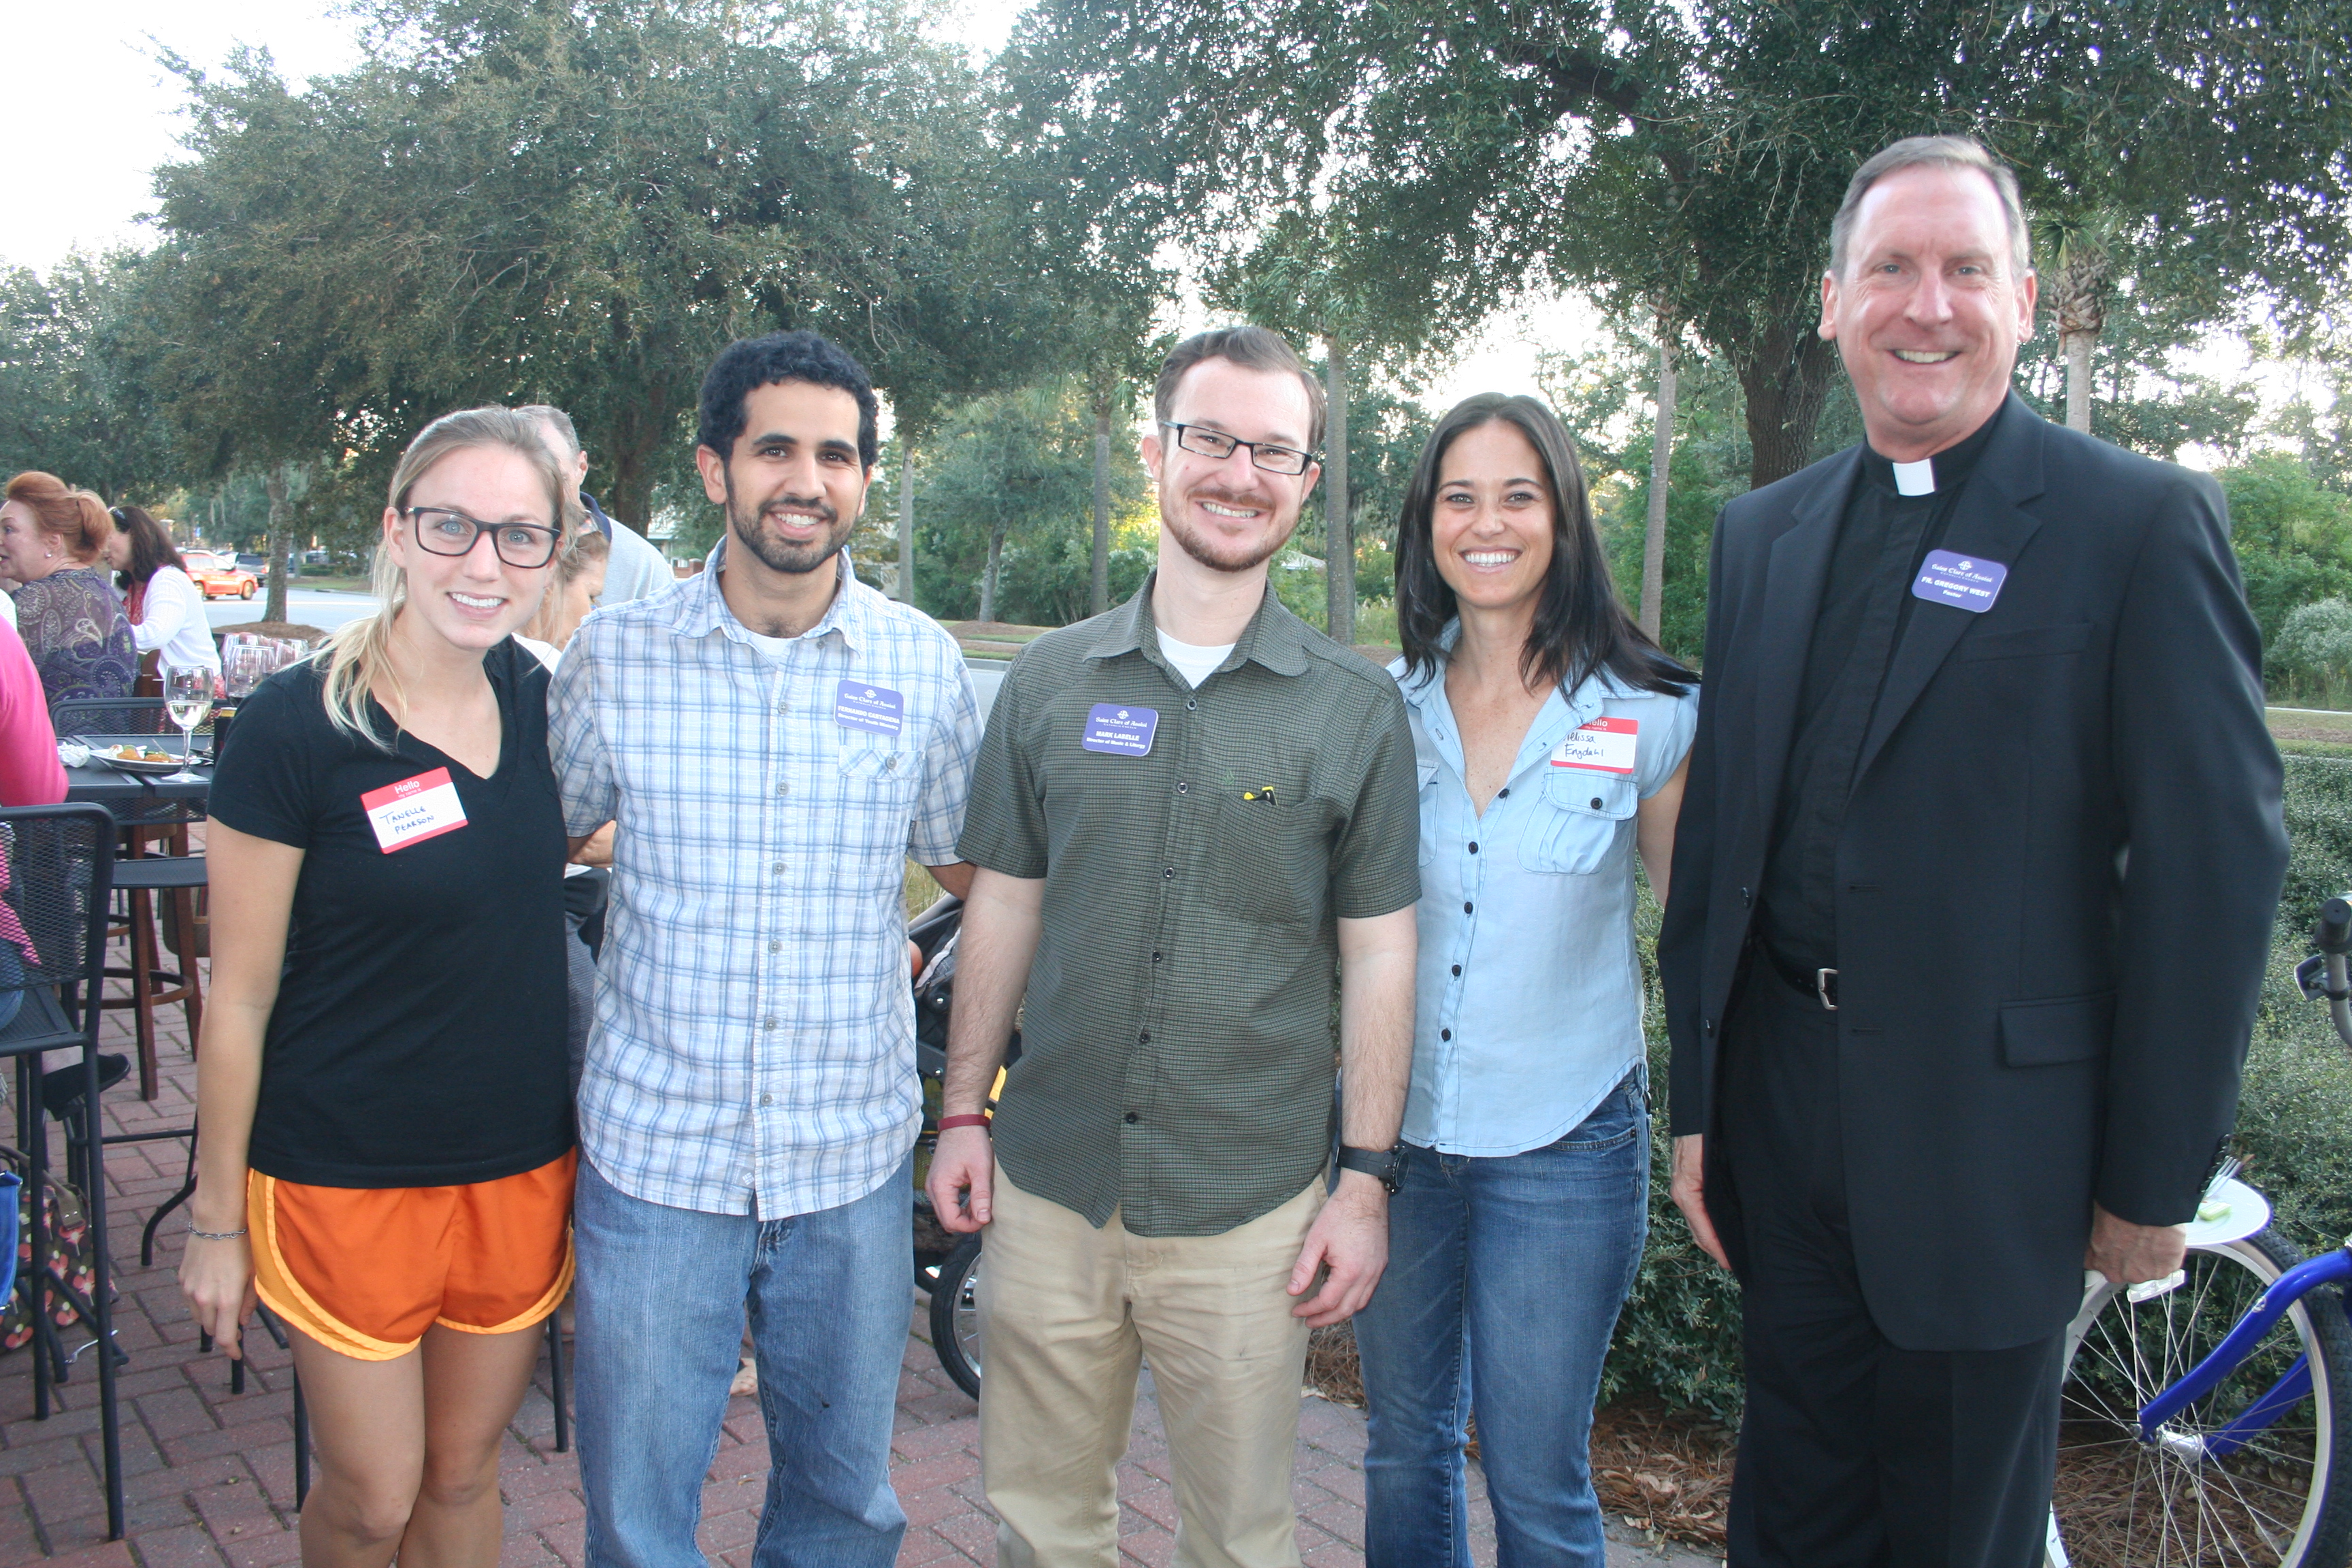 St. Clare of Assisi parish members and staff attended the Block Party. Pictured are member Tanelle Pearson, Director of Youth Ministry Fernando Cartagena, Director of Music and Liturgy Mark LaBelle, member Melissa Engdahl and Father Gregory West.